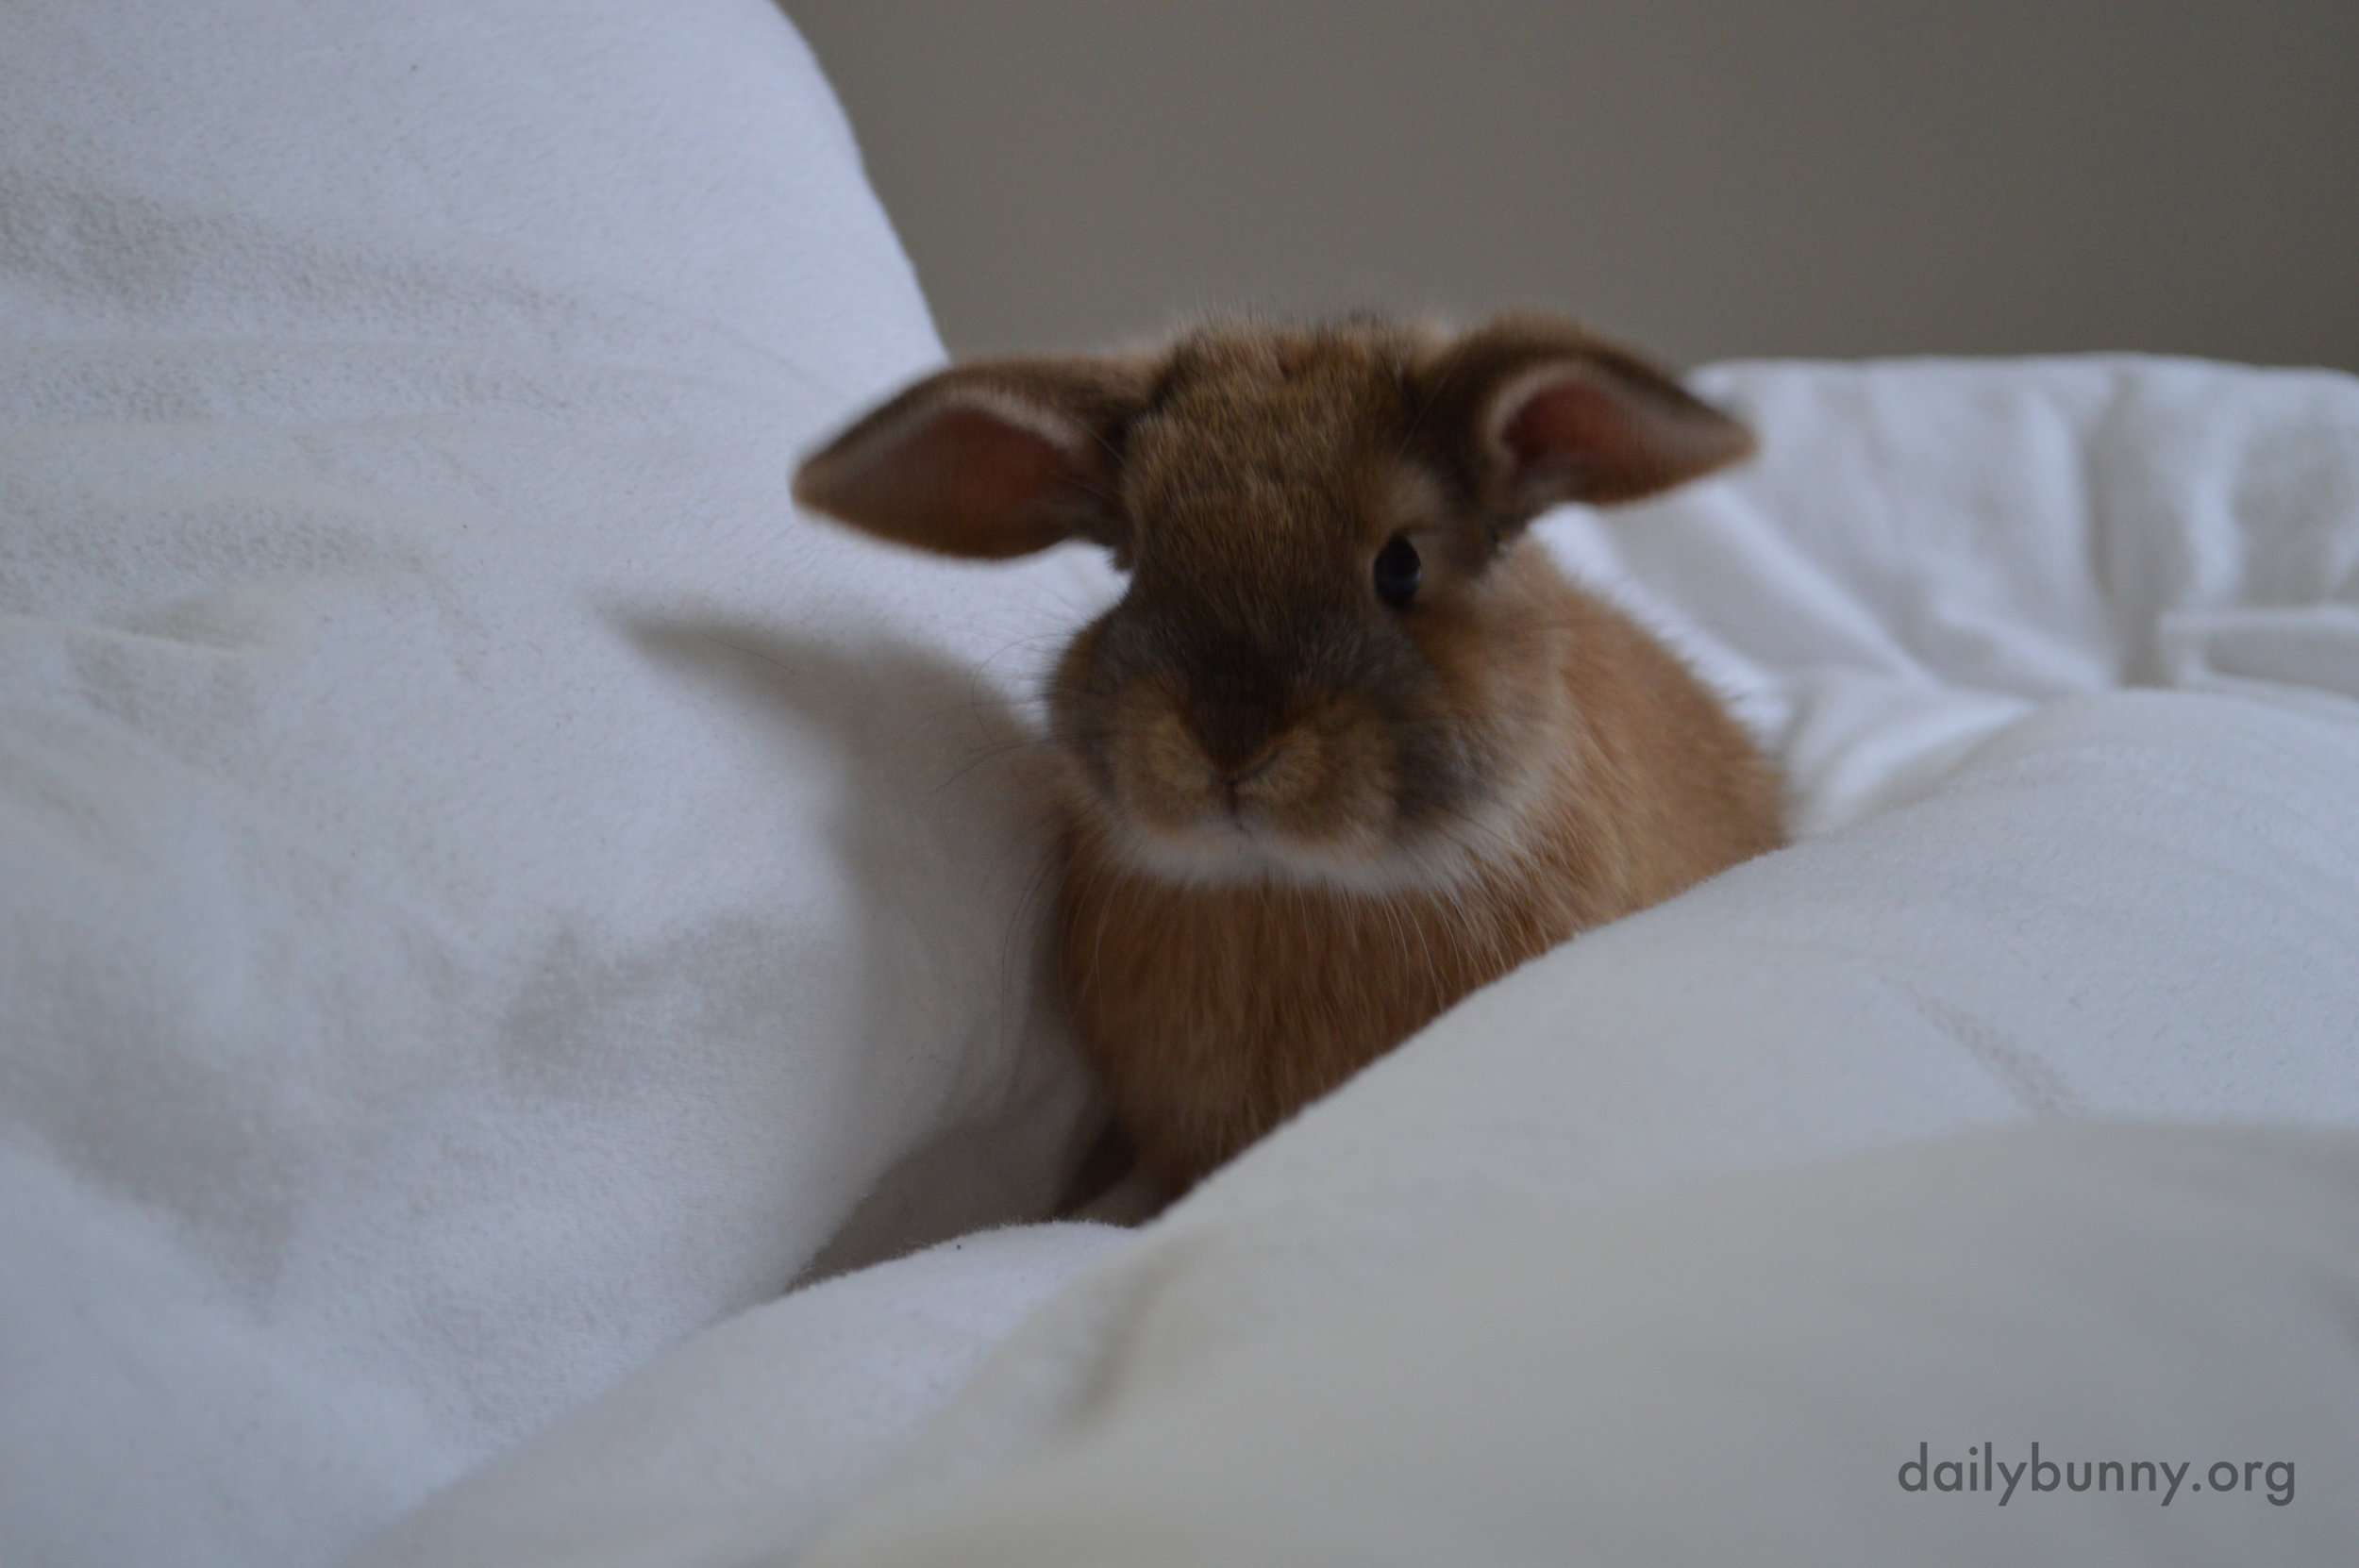 Bunny Explores the Hilly Fluffiness of the Duvet 2